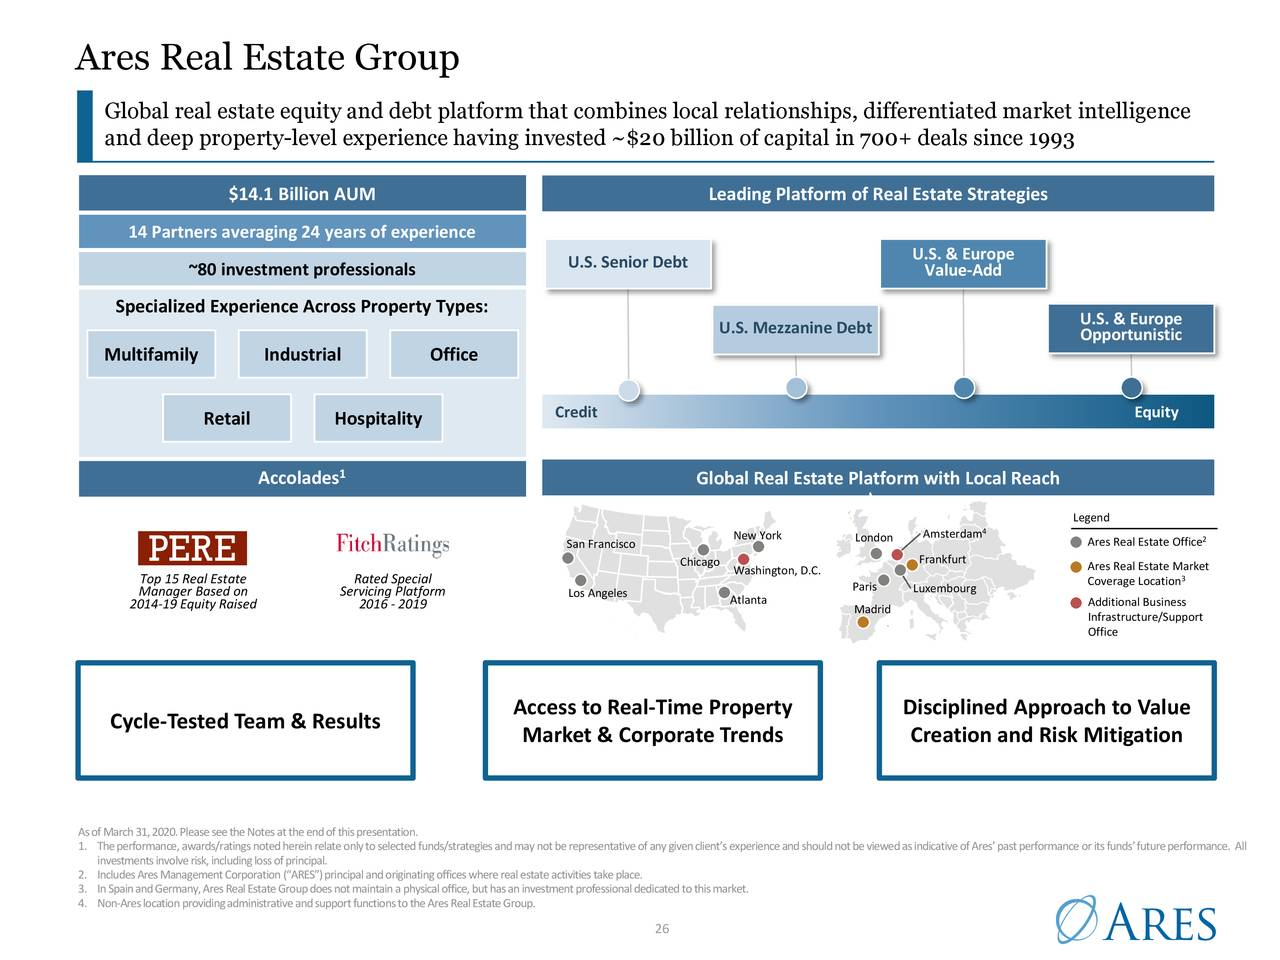 Grupo Ares Real Estate